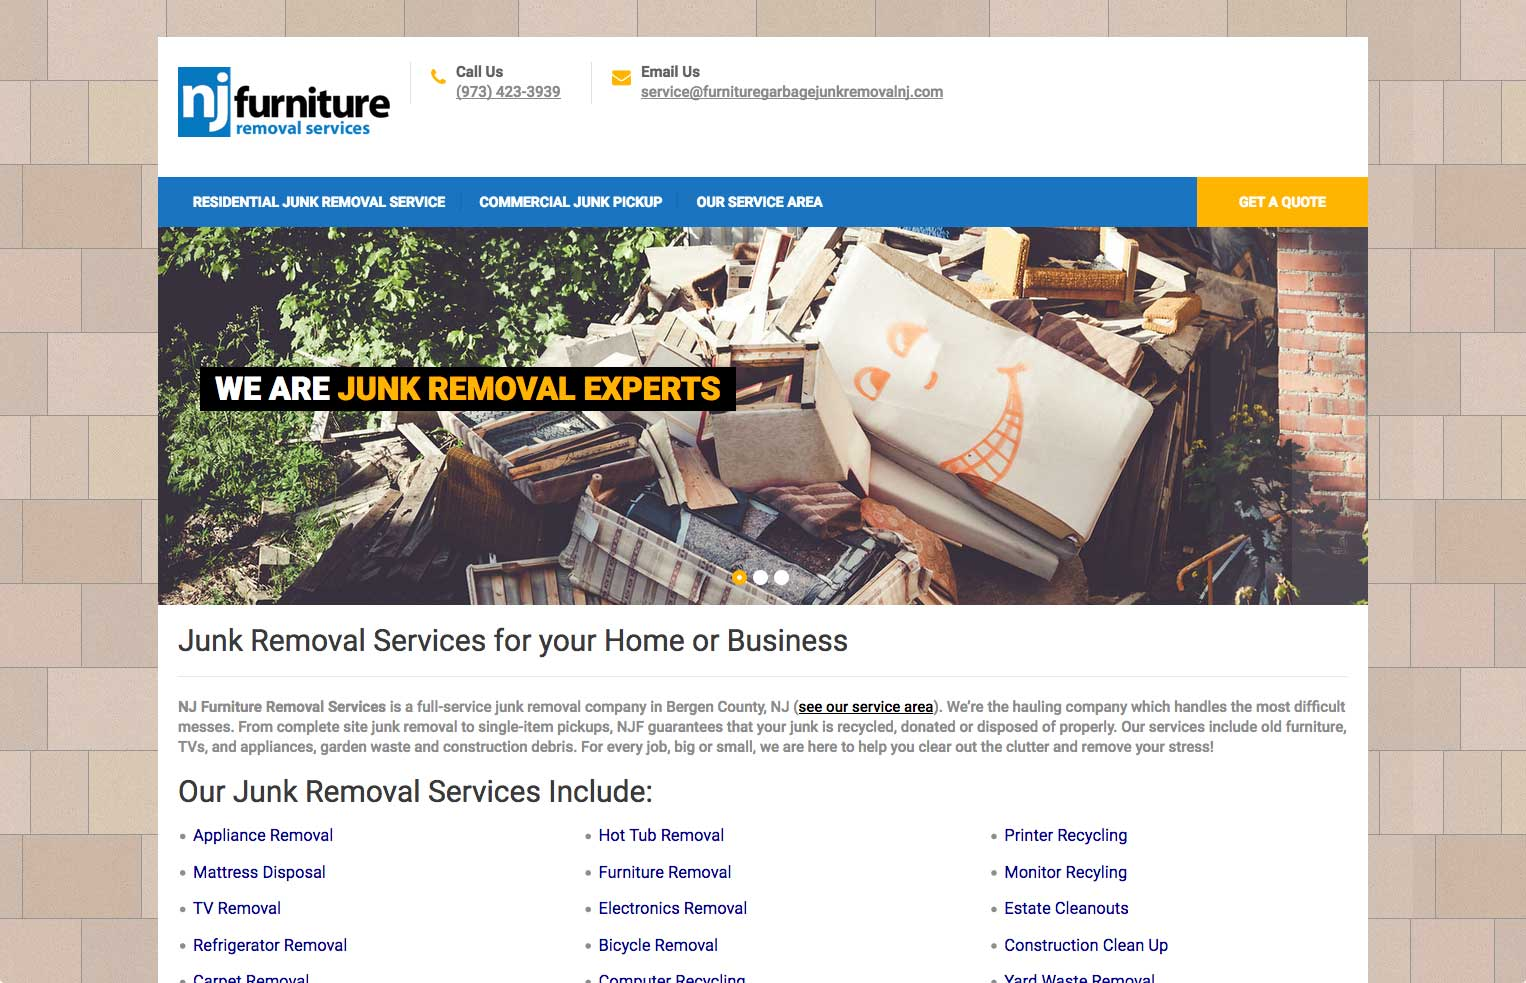 NJ Furniture Removal Services